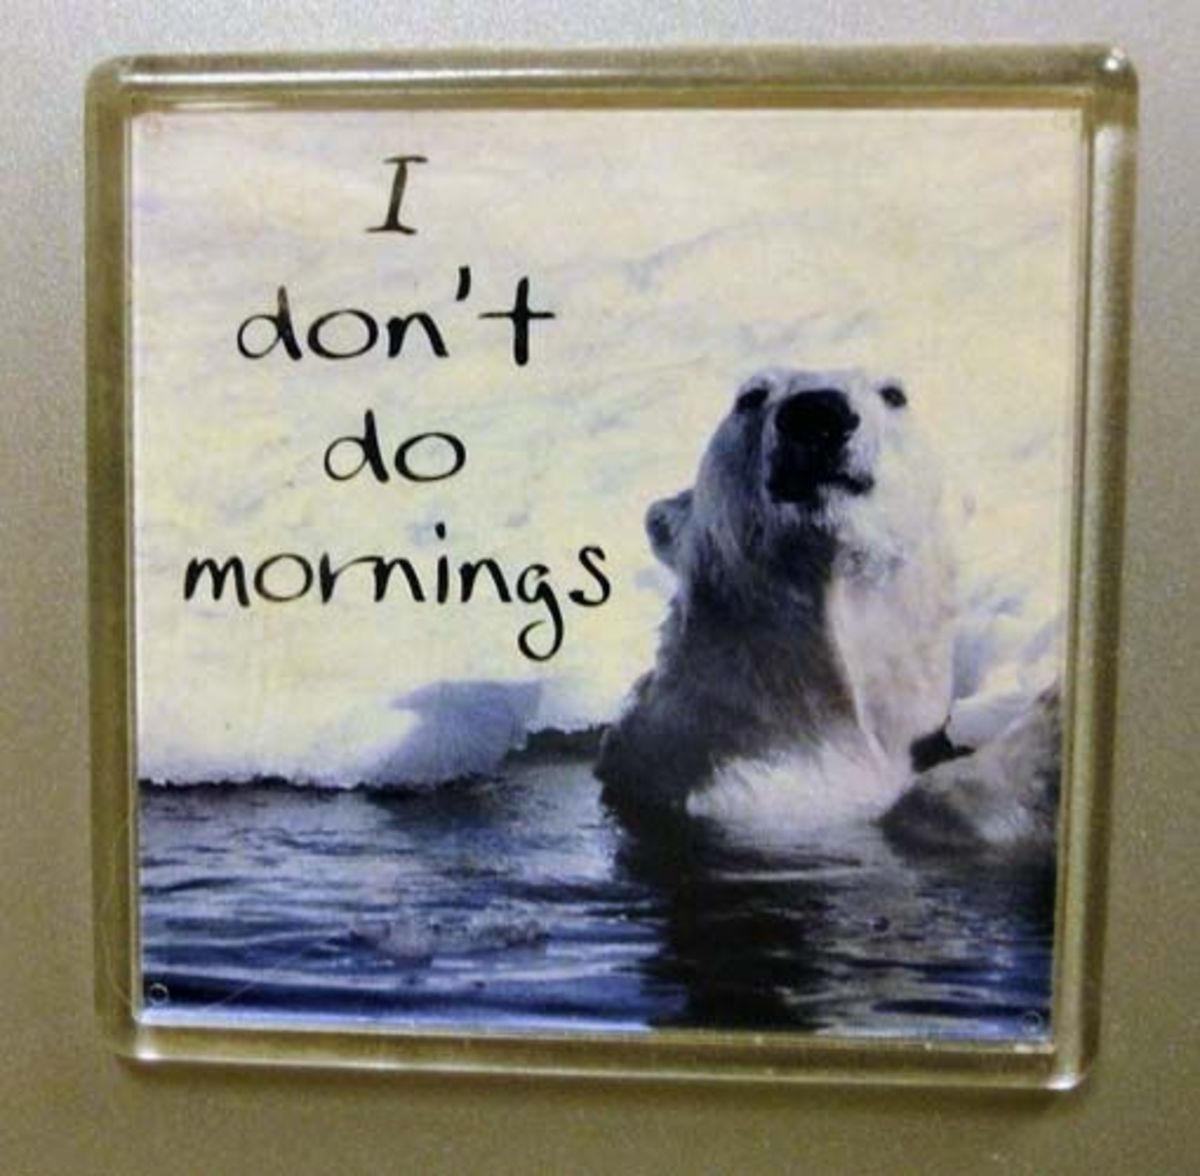 I do not do mornings